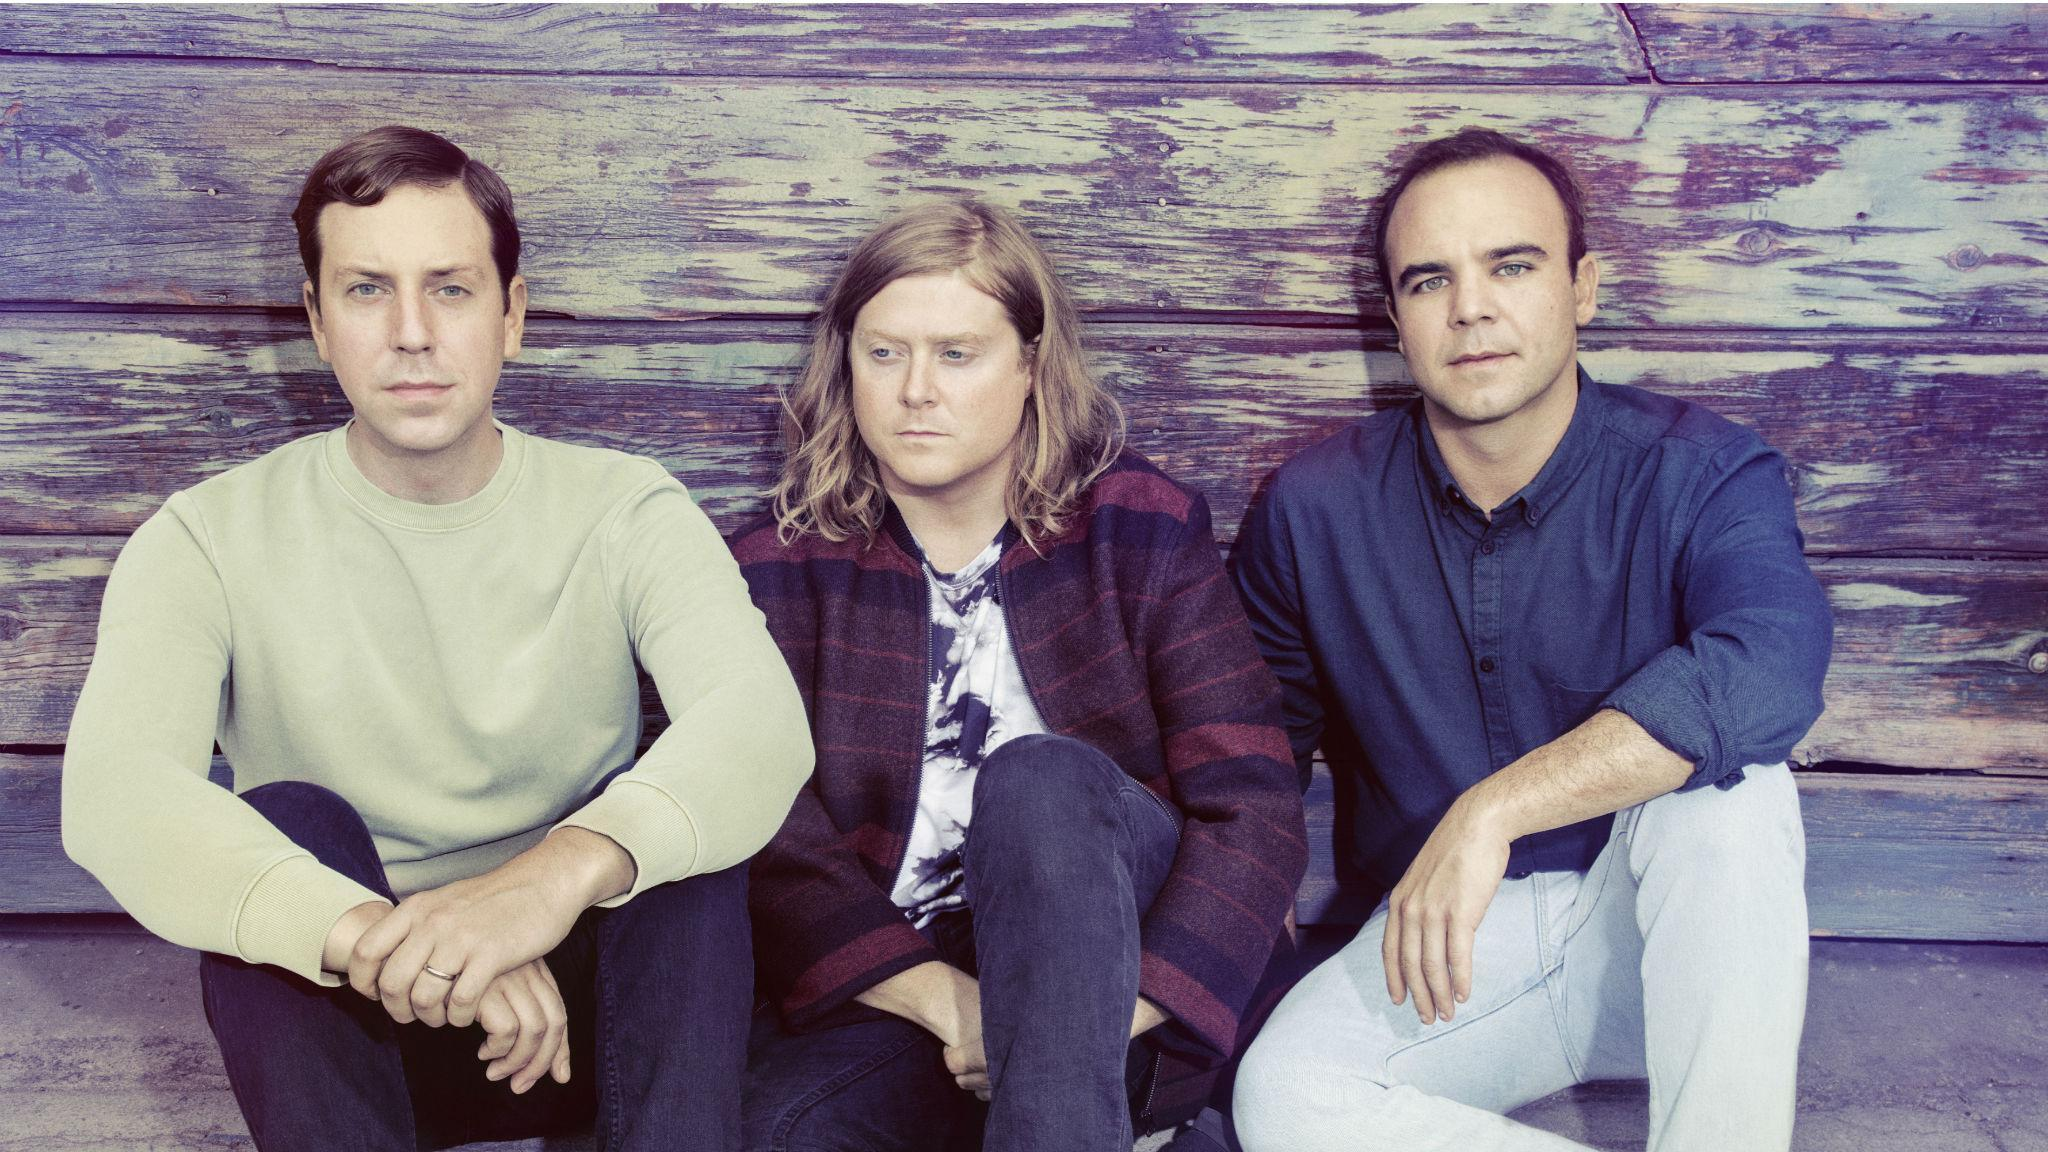 Future Islands' New Album Stays Smooth, Even As Veins Bulge